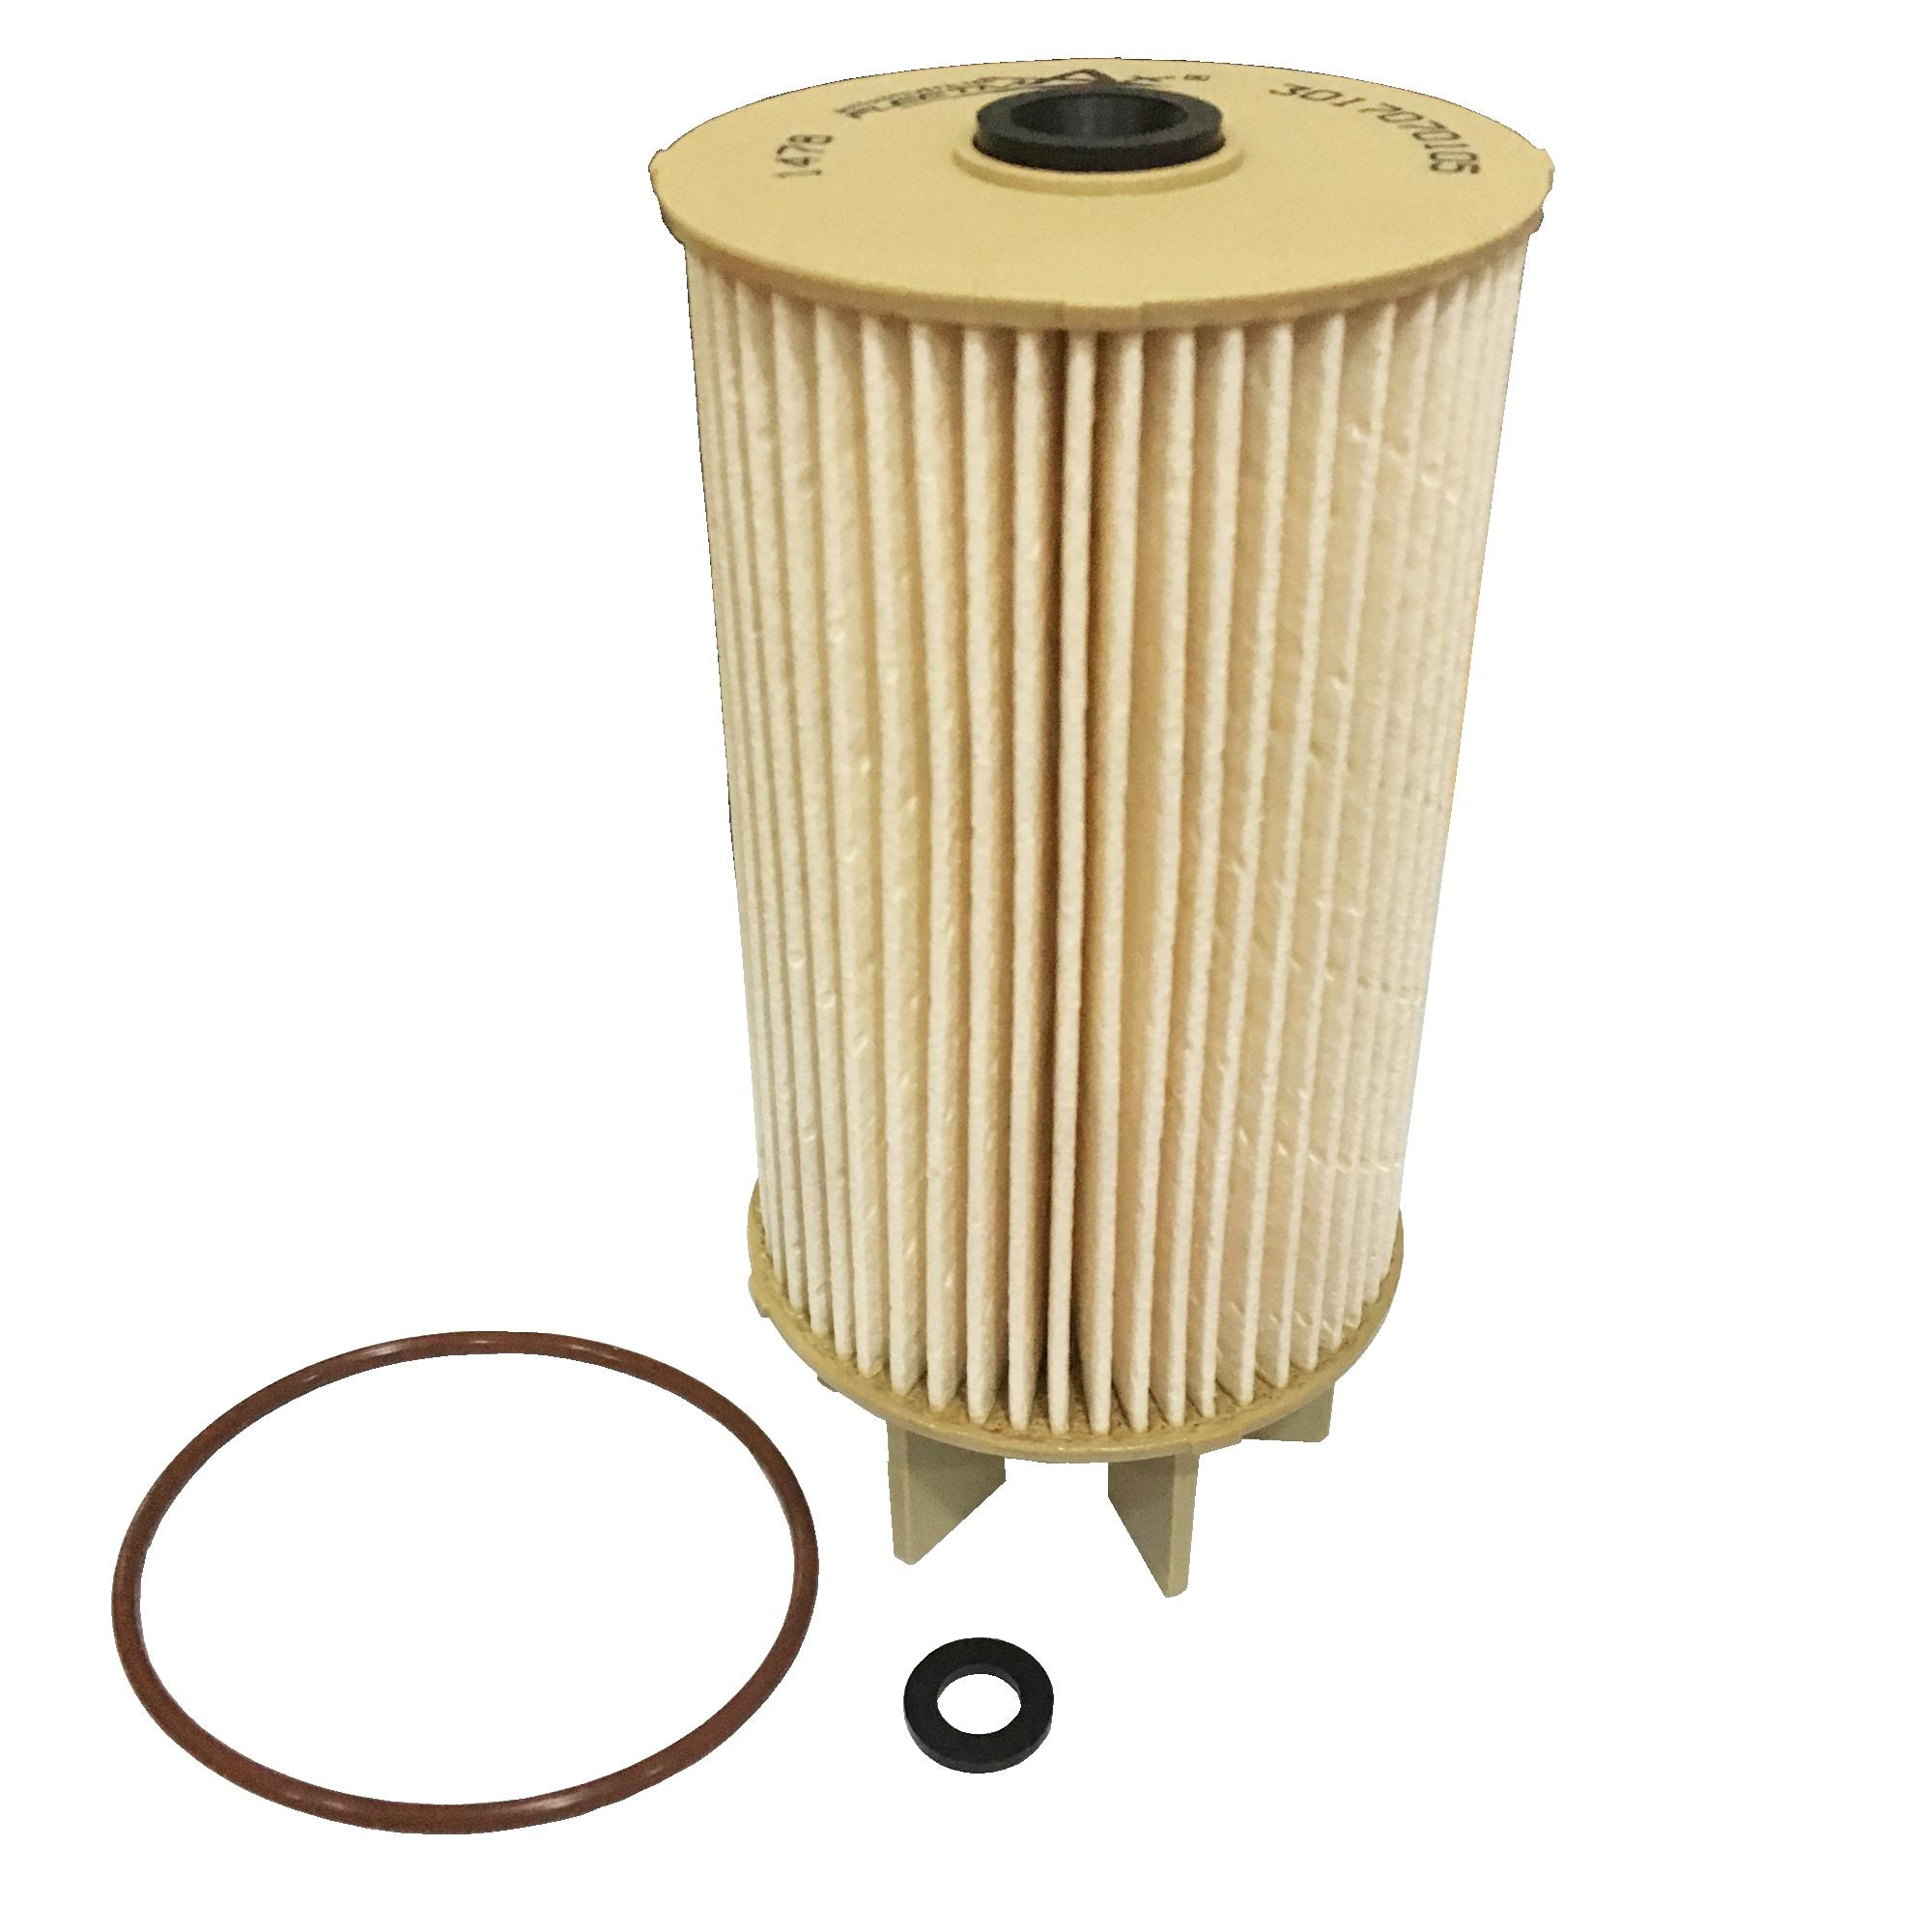 Fuel Filter For Sale Gas Online Brands Prices Reviews In 2008 Mitsubishi Lancer Fleetmax Navara Np300 2015 2018